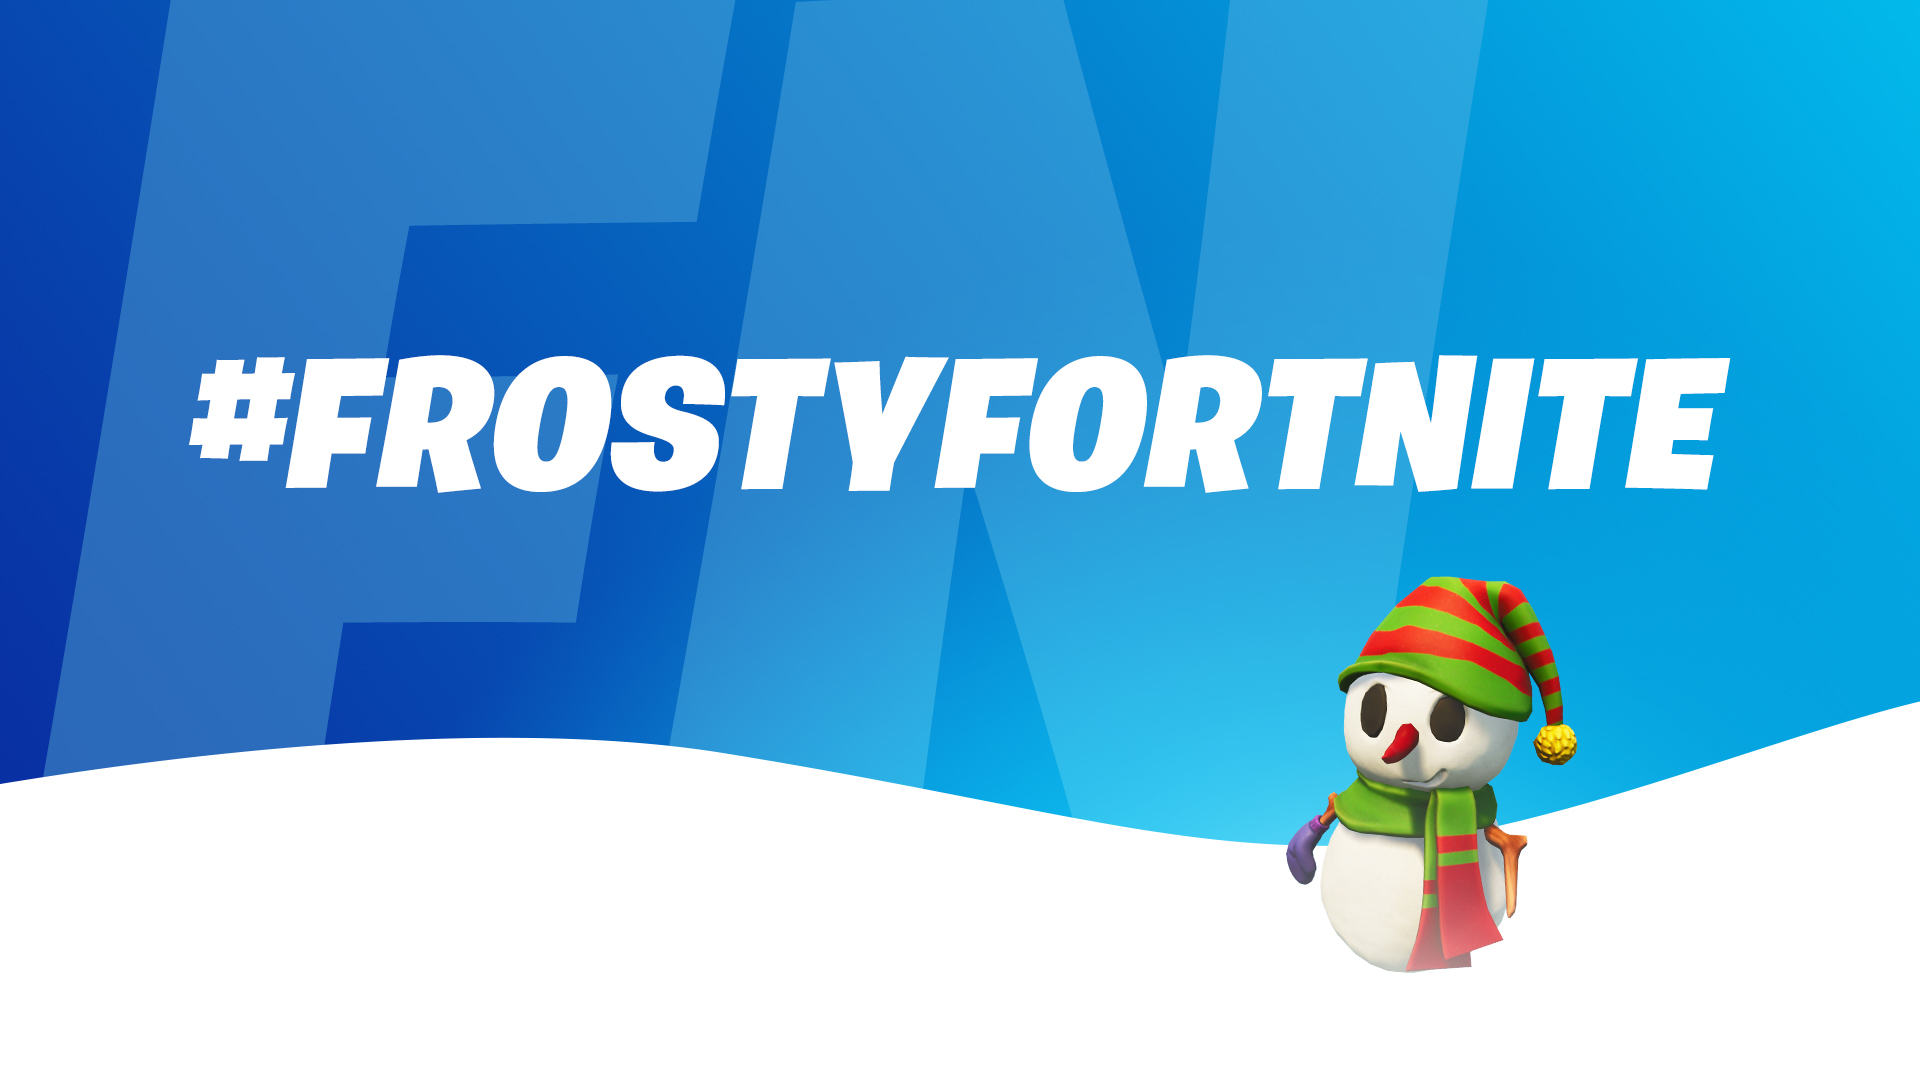 #FrostyFortnite submissions closing soon